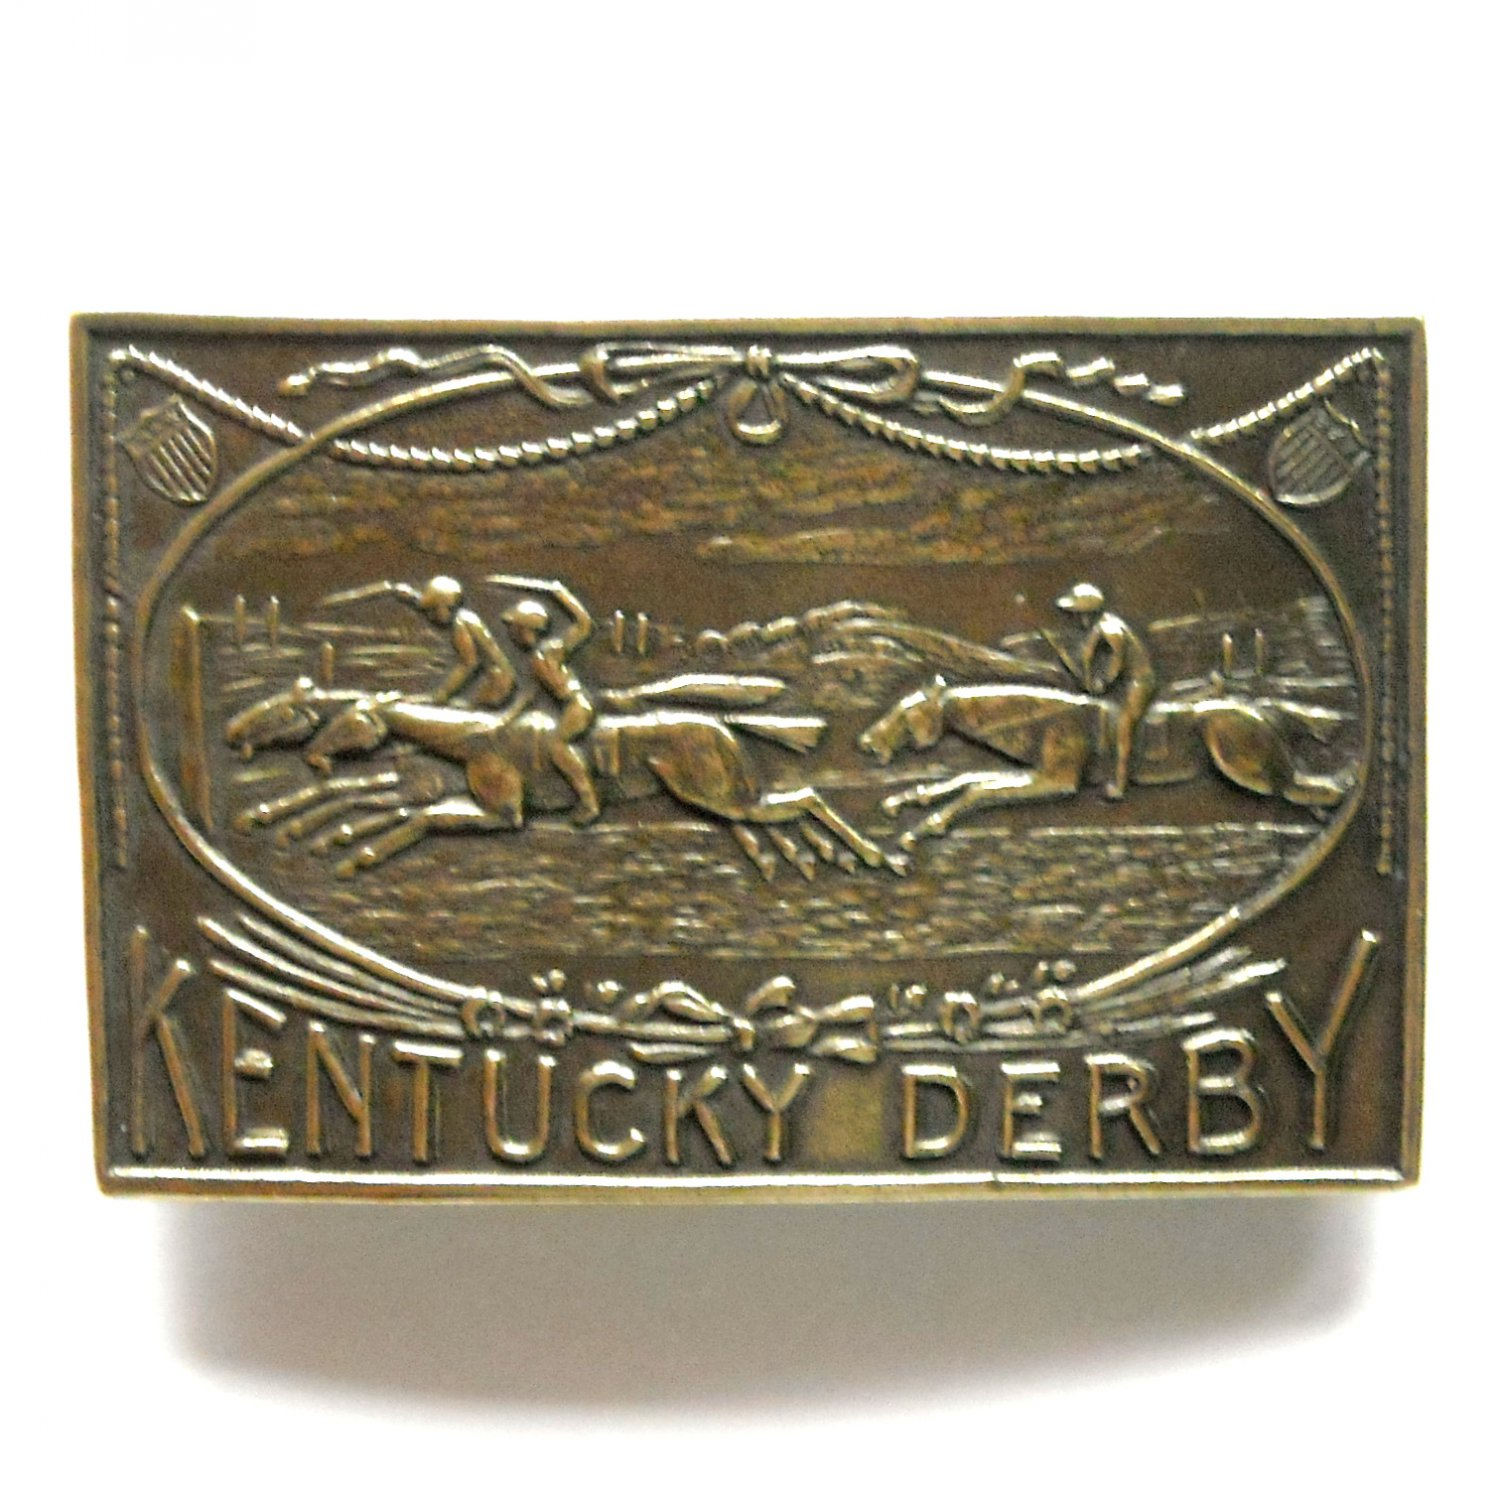 Kentucky Derby Vintage Bergamot Brass Belt Buckle